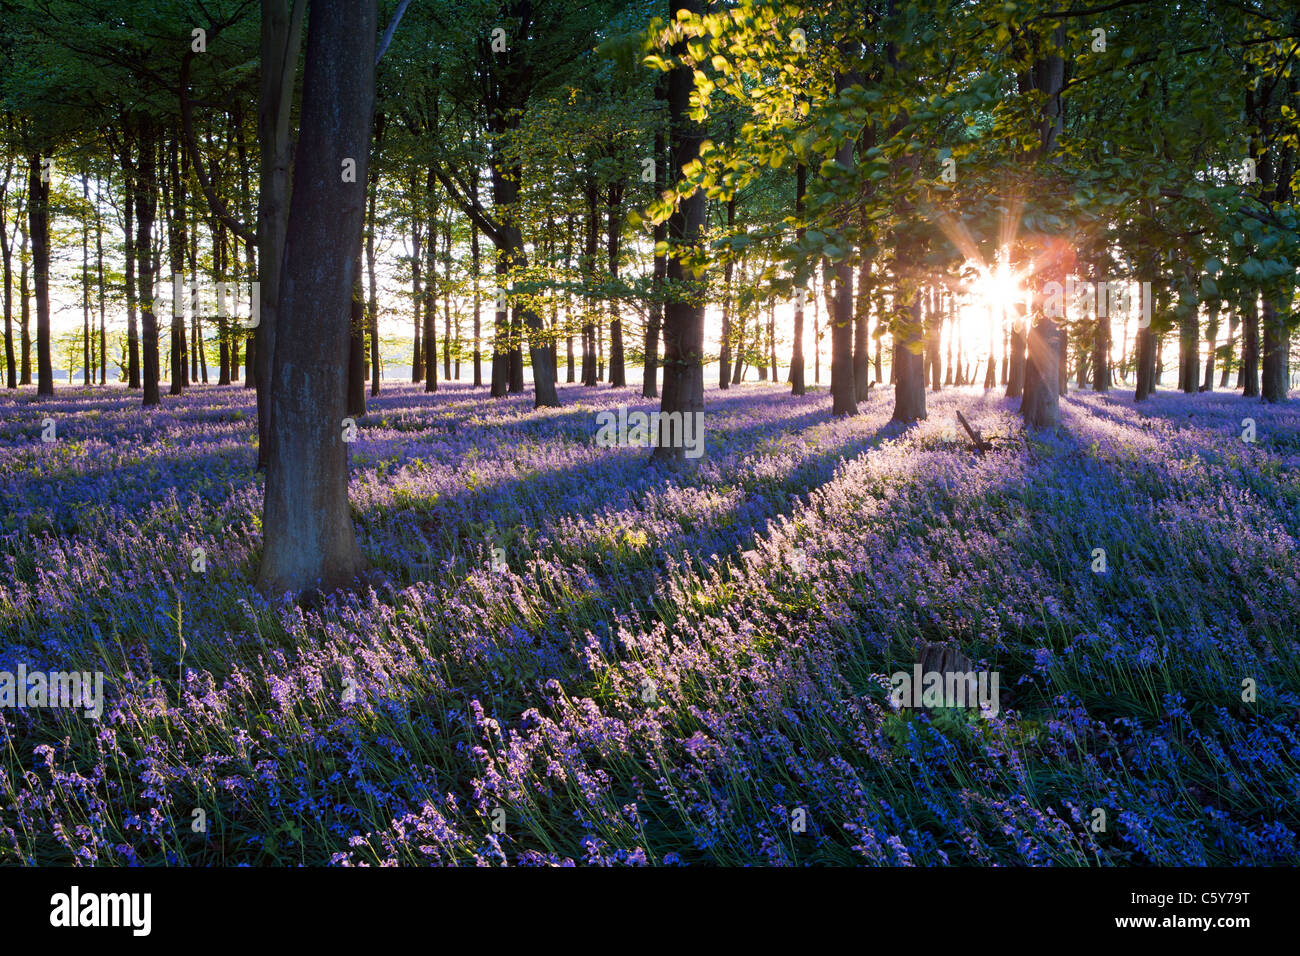 Free Wallpaper Fall Colours Bluebells With Sun Rays Coming Through Trees At Sunset In